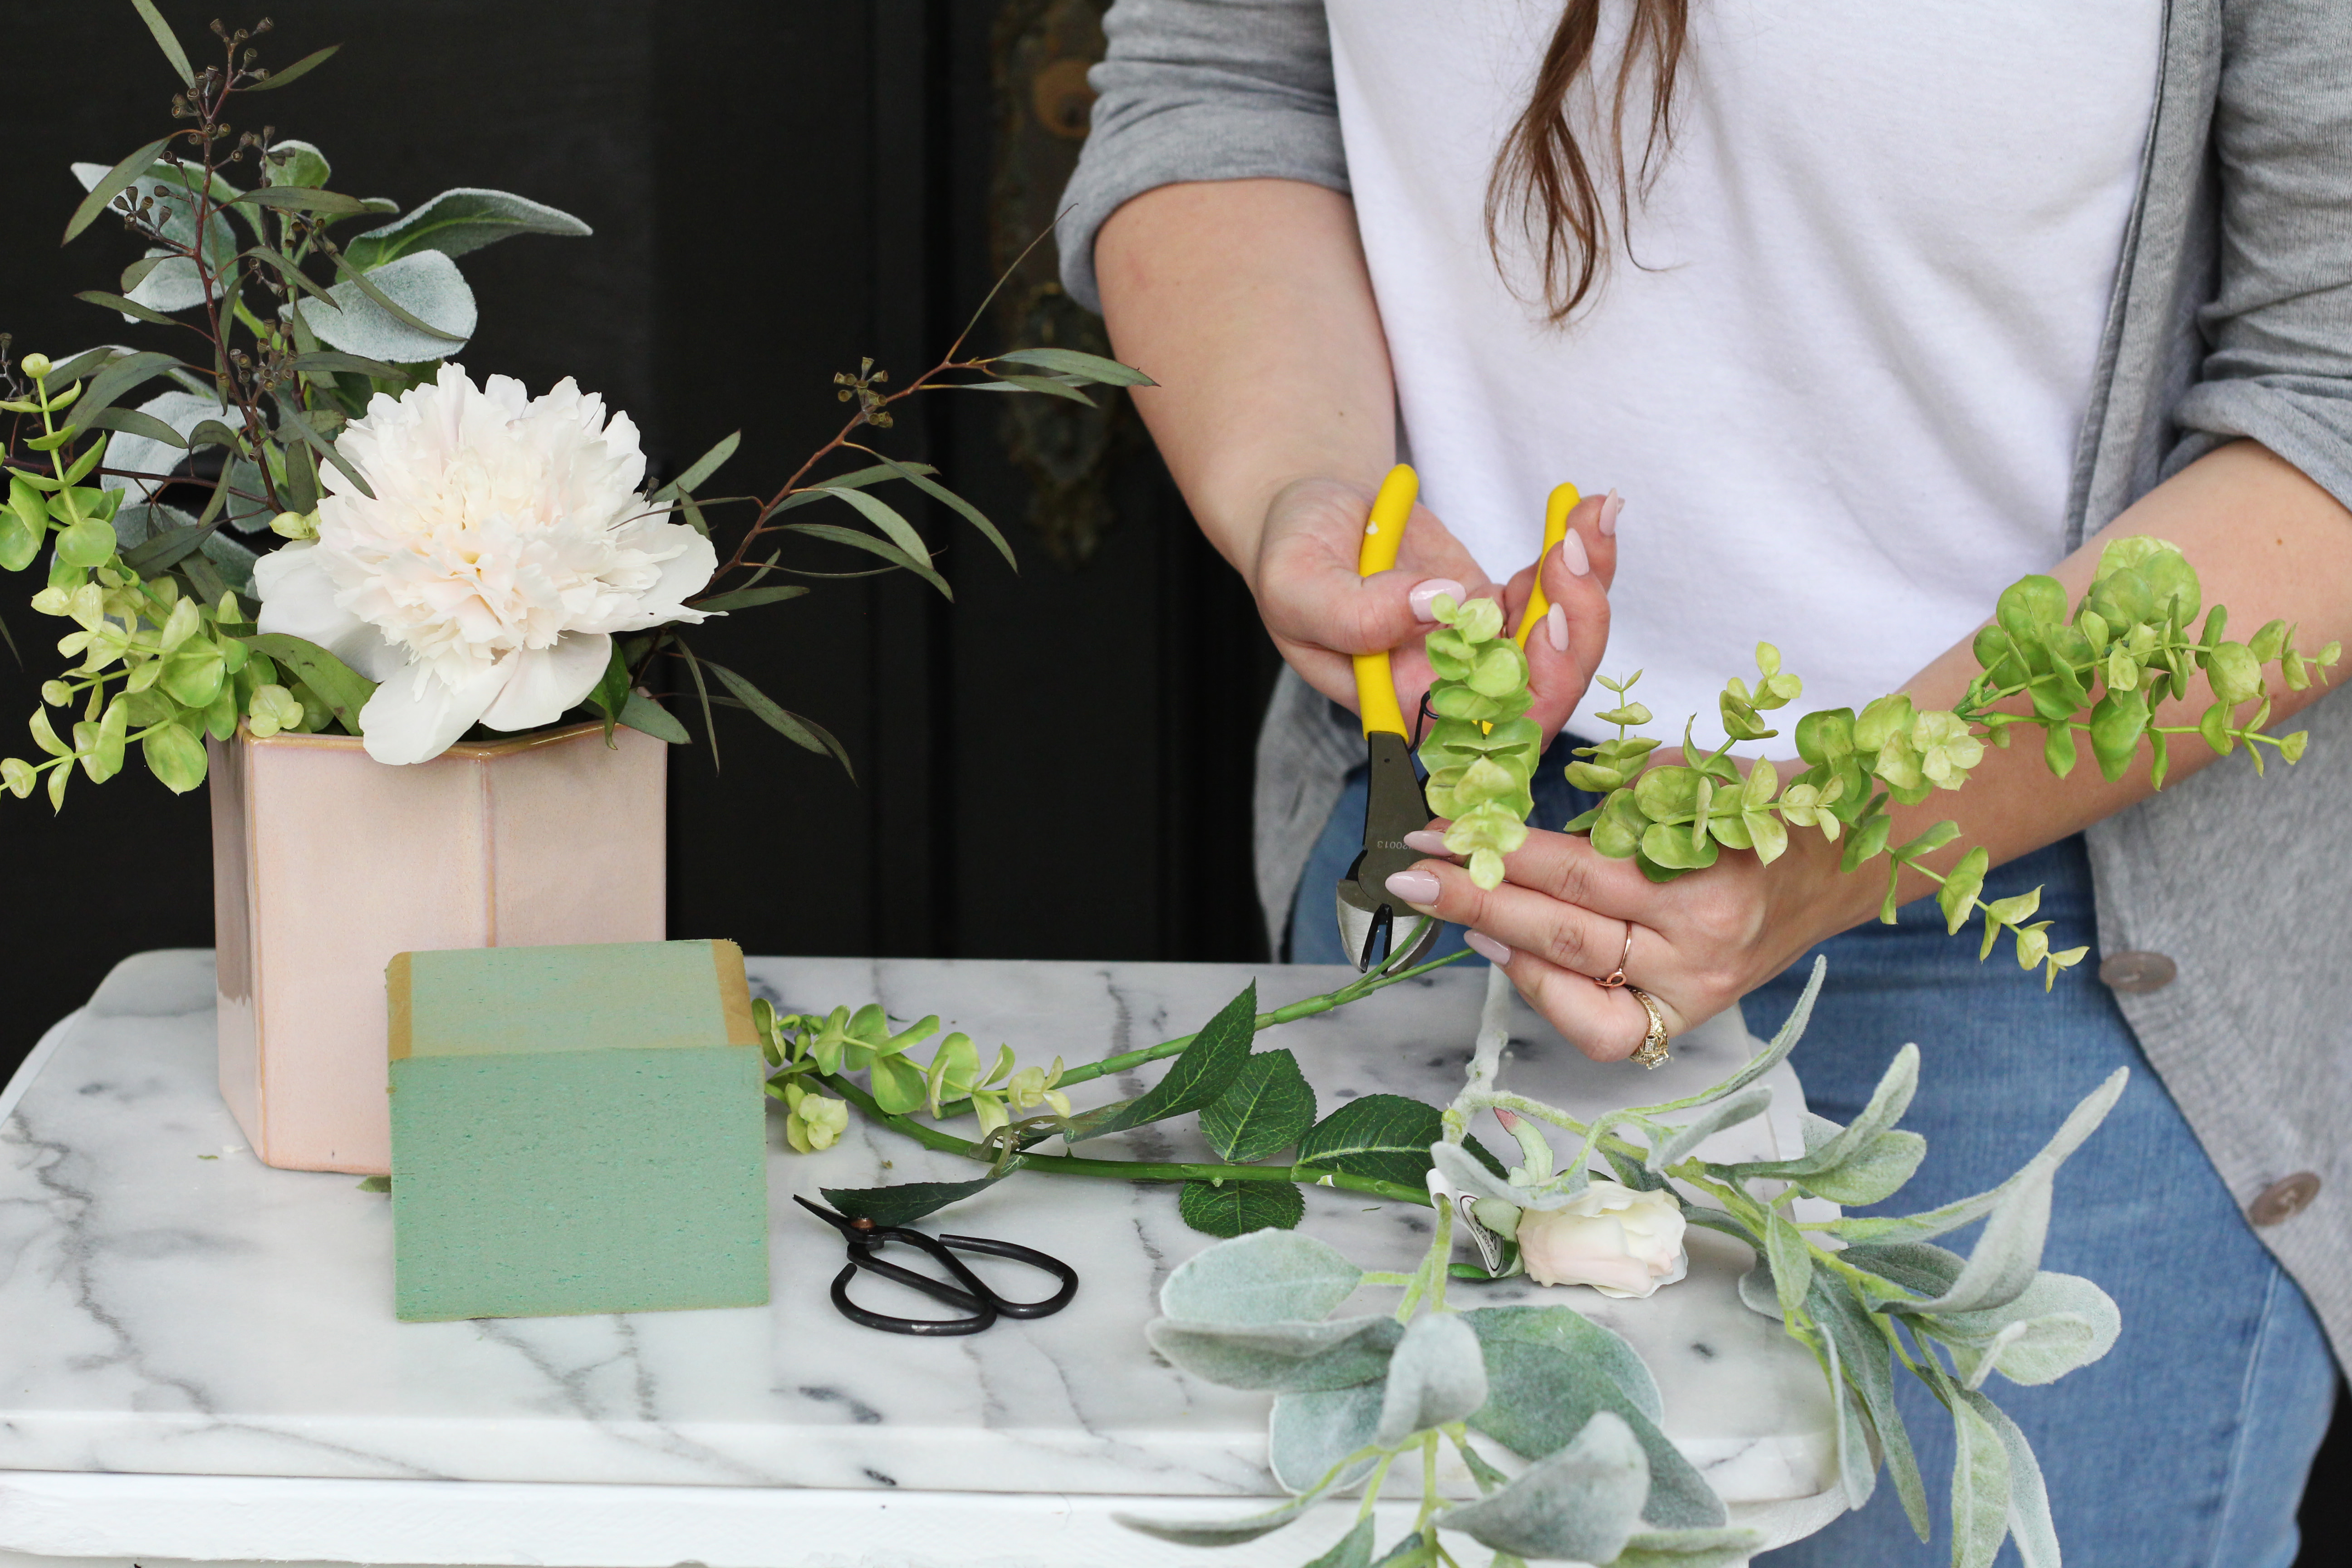 Add faux greenery to your floral designs to save money - you can use them again and again in your arranging